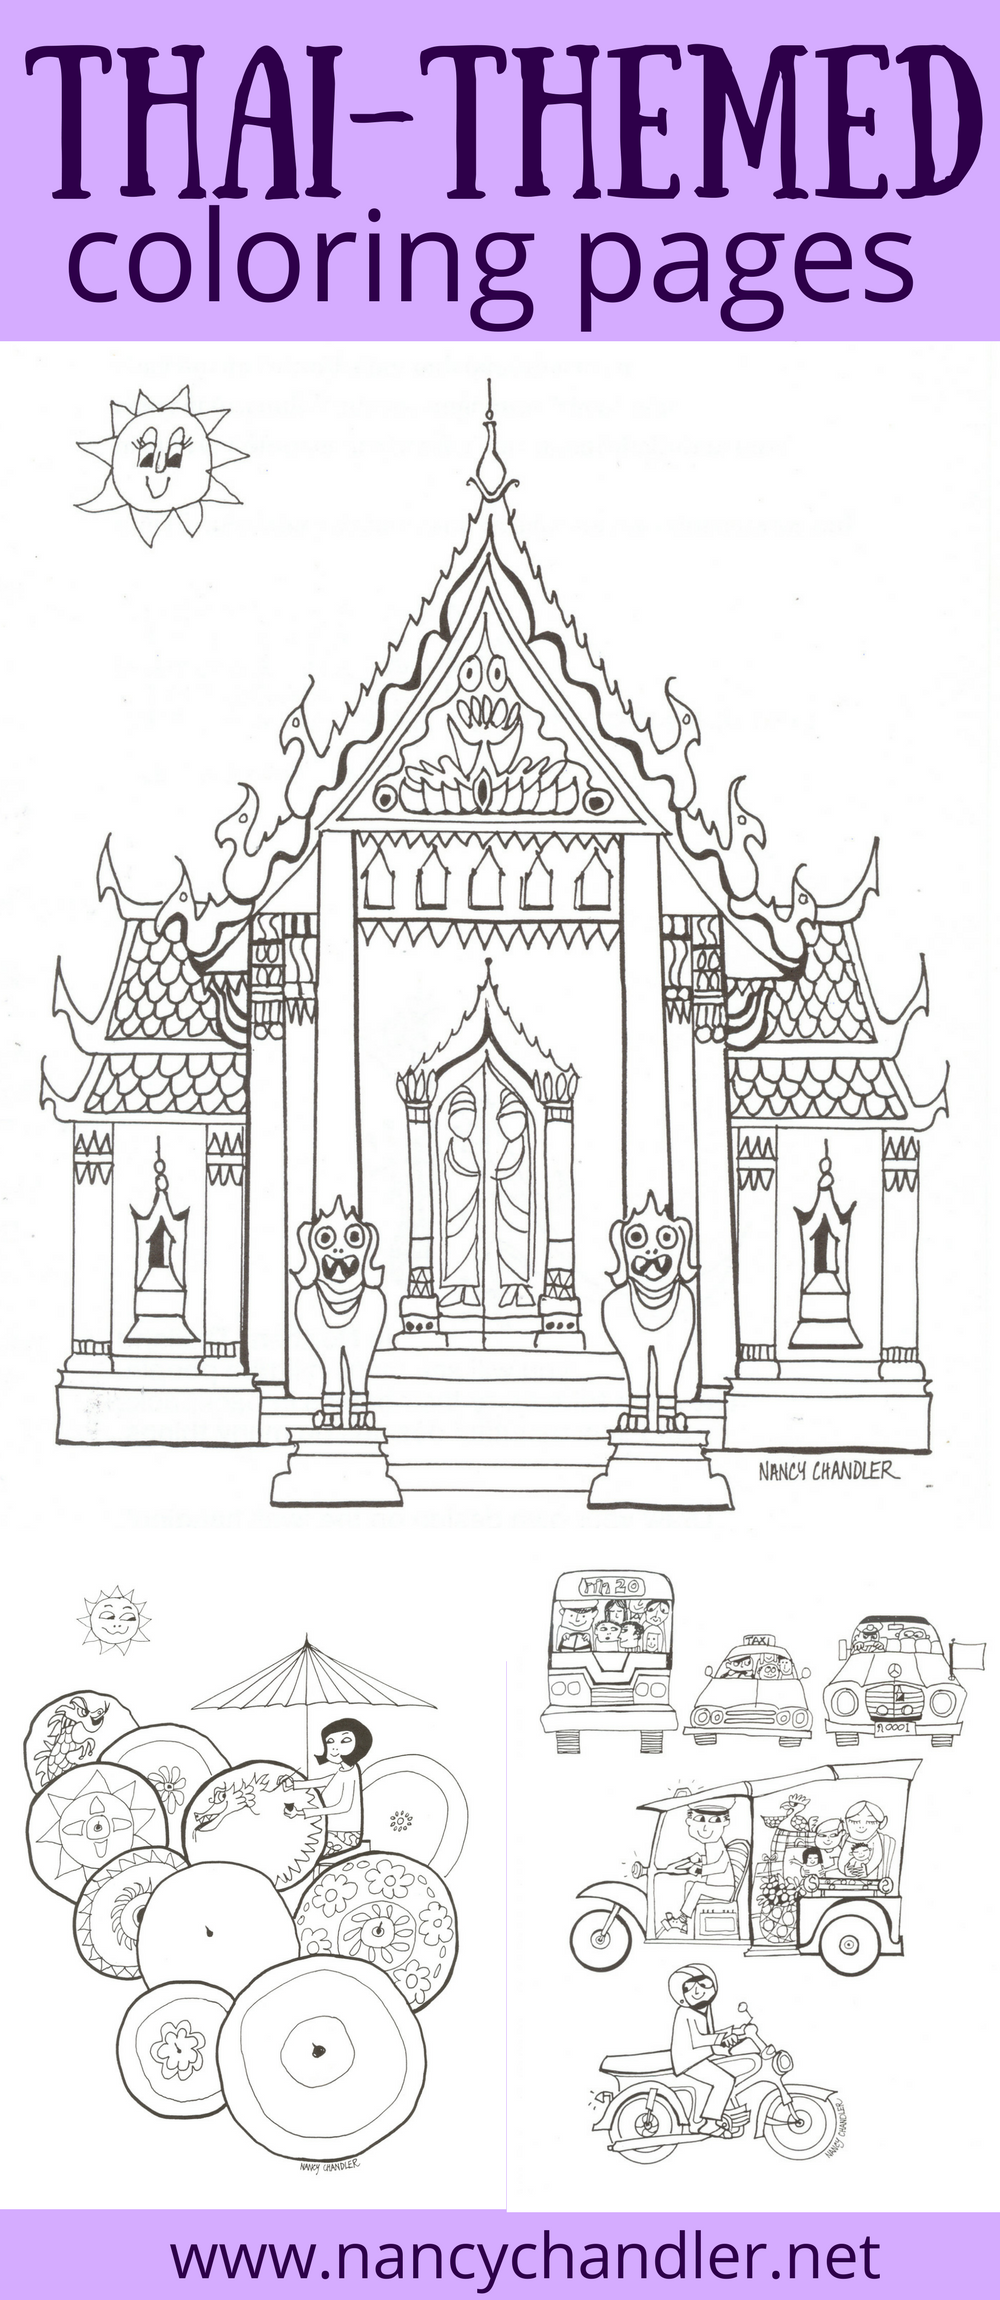 Thailand Themed Coloring Books And Free Downloads From Nancy Chandler Get Free Coloring Pages For Adults Coloring Pages Thailand Kids World Map Coloring Page